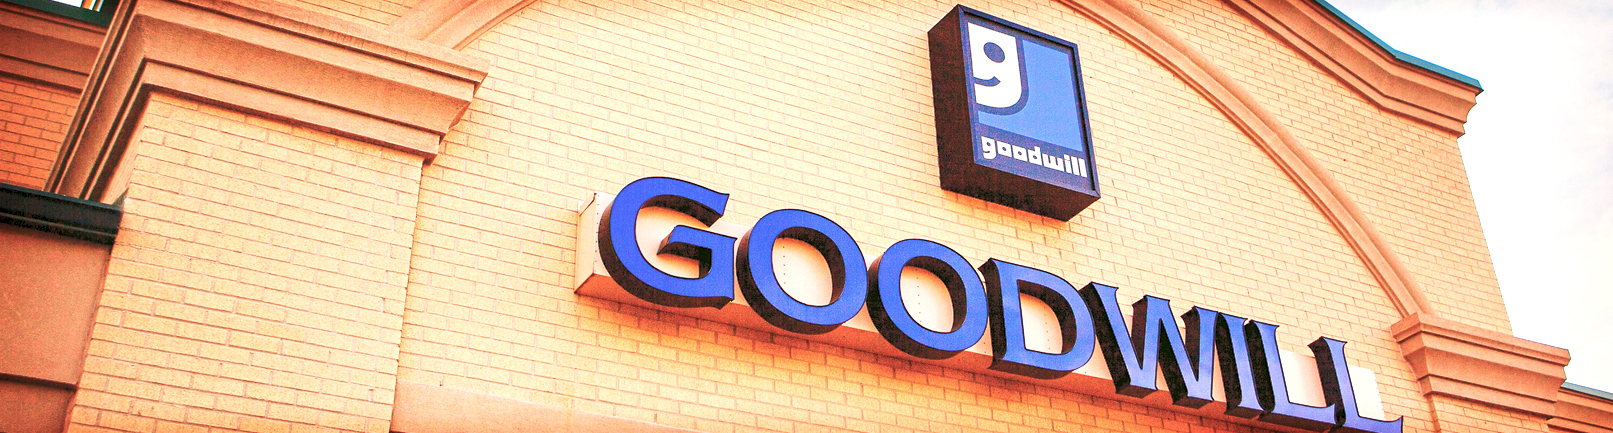 a8cc1d3266c The Goodwill retail store currently located at 110 West Platte Avenue will  be moving into the new location less than a mile up the road.